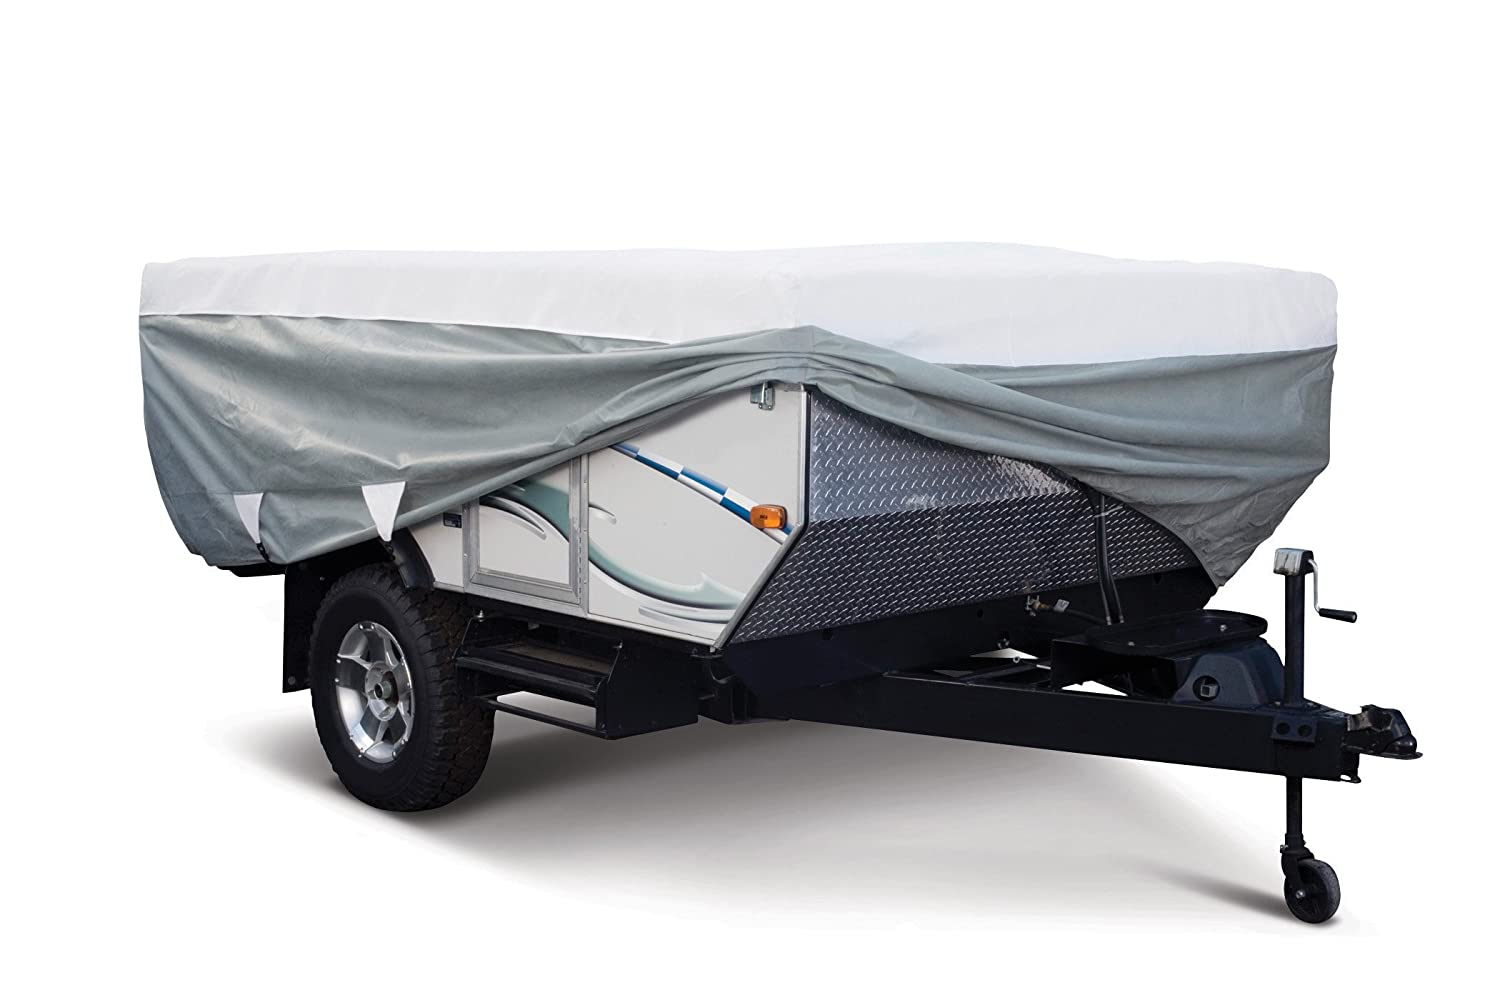 Classic Accessories OverDrive PolyPRO 3 Deluxe Pop-Up Camper Trailer Cover, Fits up to 8' 6' Trailers - Max Weather Protection with 3-Ply Poly Fabric Roof RV Cover (80-209-303101-00) CLASSIC ACCESSORIES INC